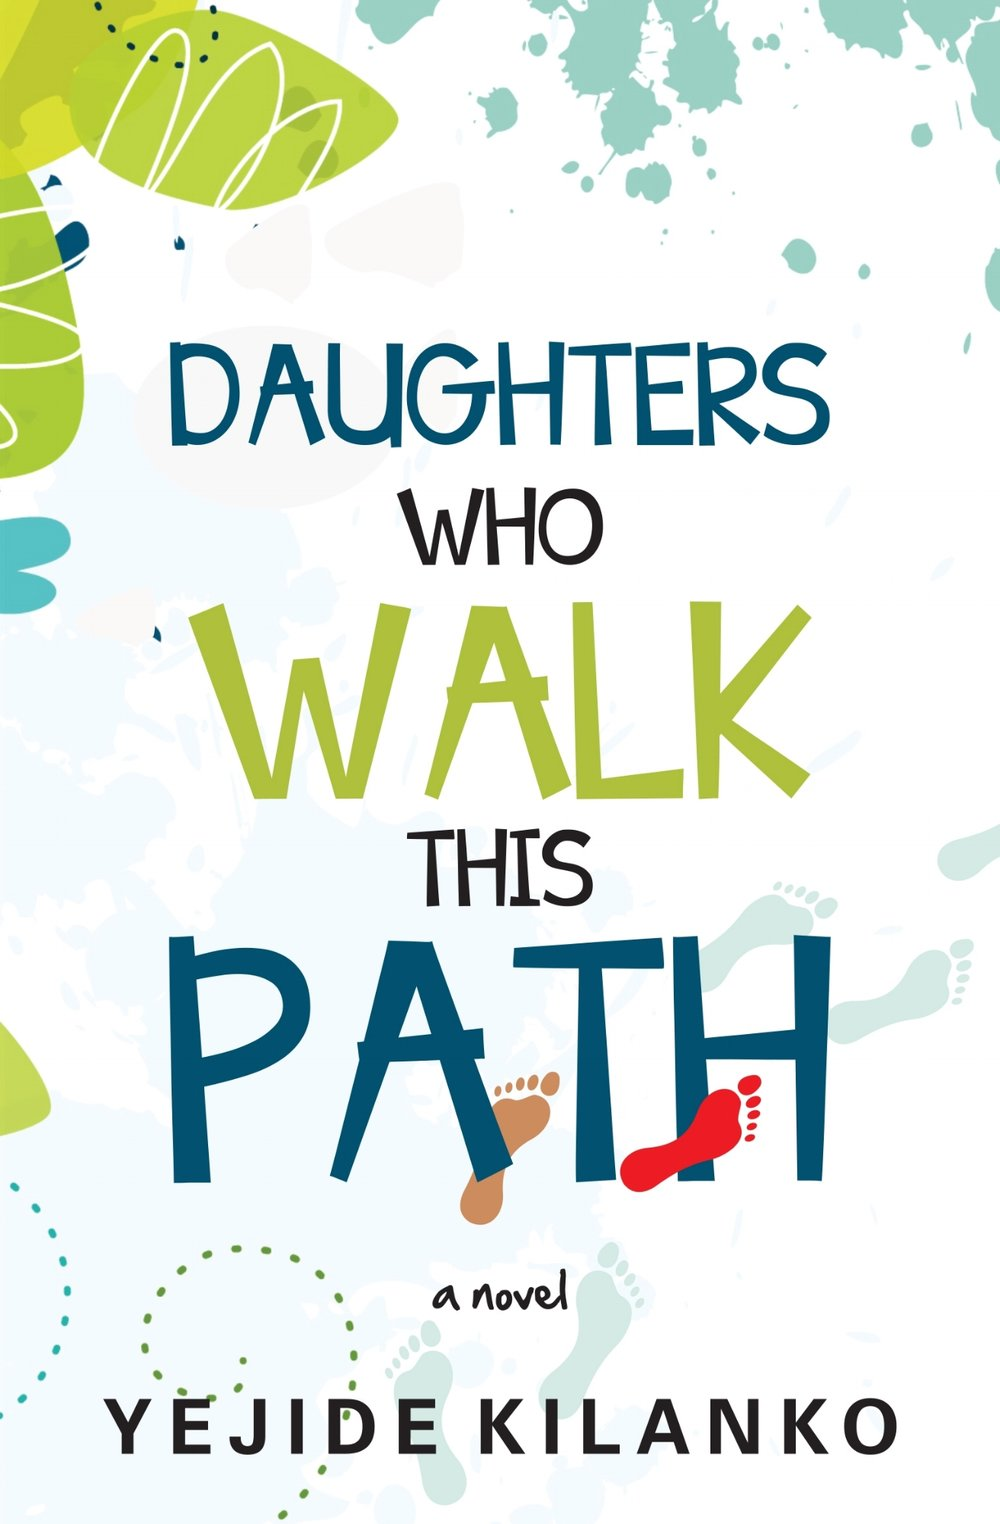 daughters-who-walk-this-path-cover_front.jpg